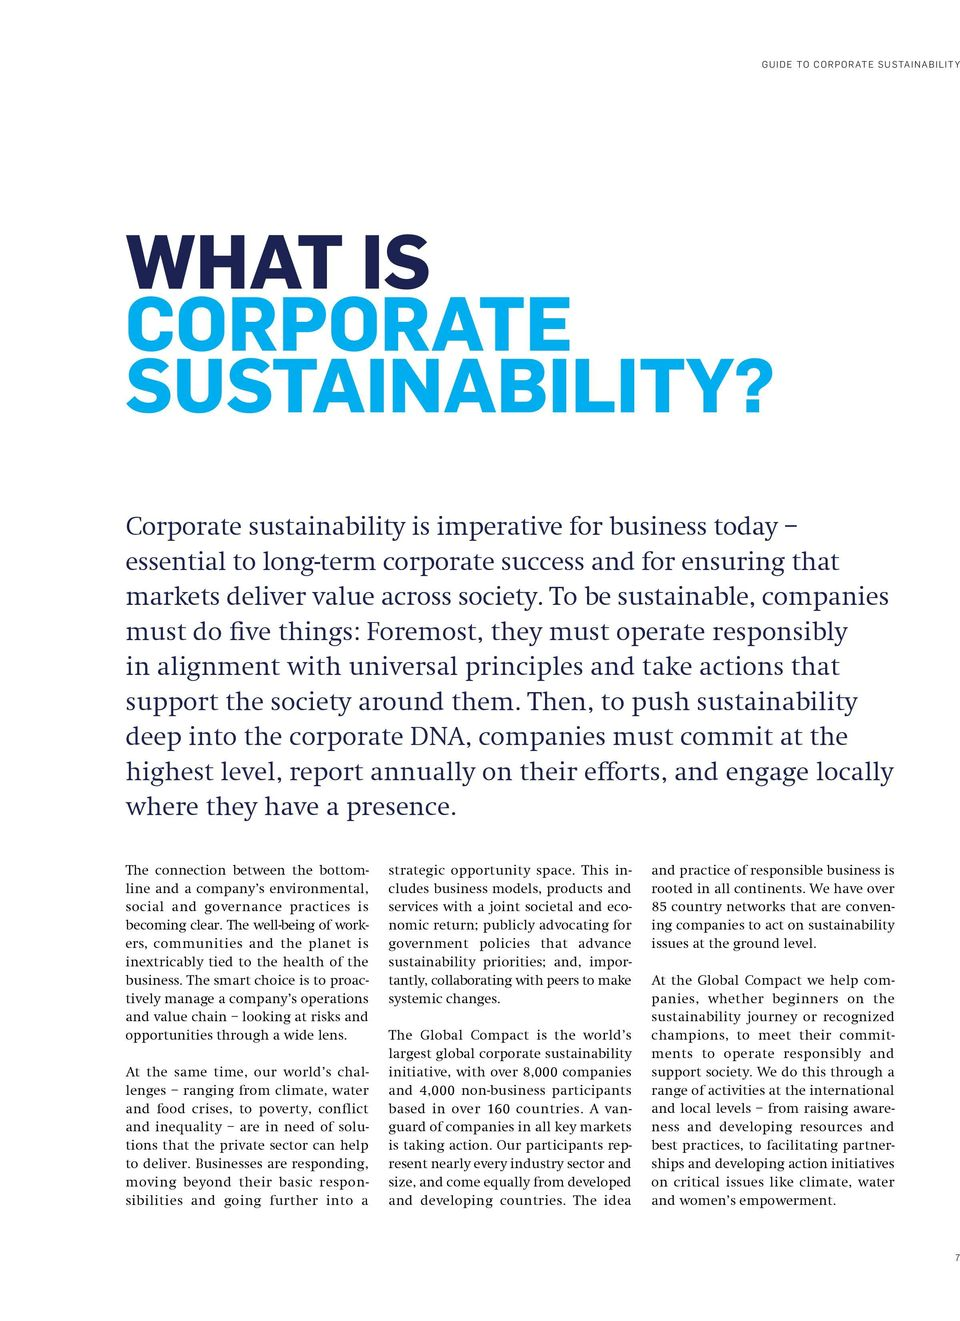 To be sustainable, companies must do ve things: Foremost, they must operate responsibly in alignment with universal principles and take actions that support the society around them.